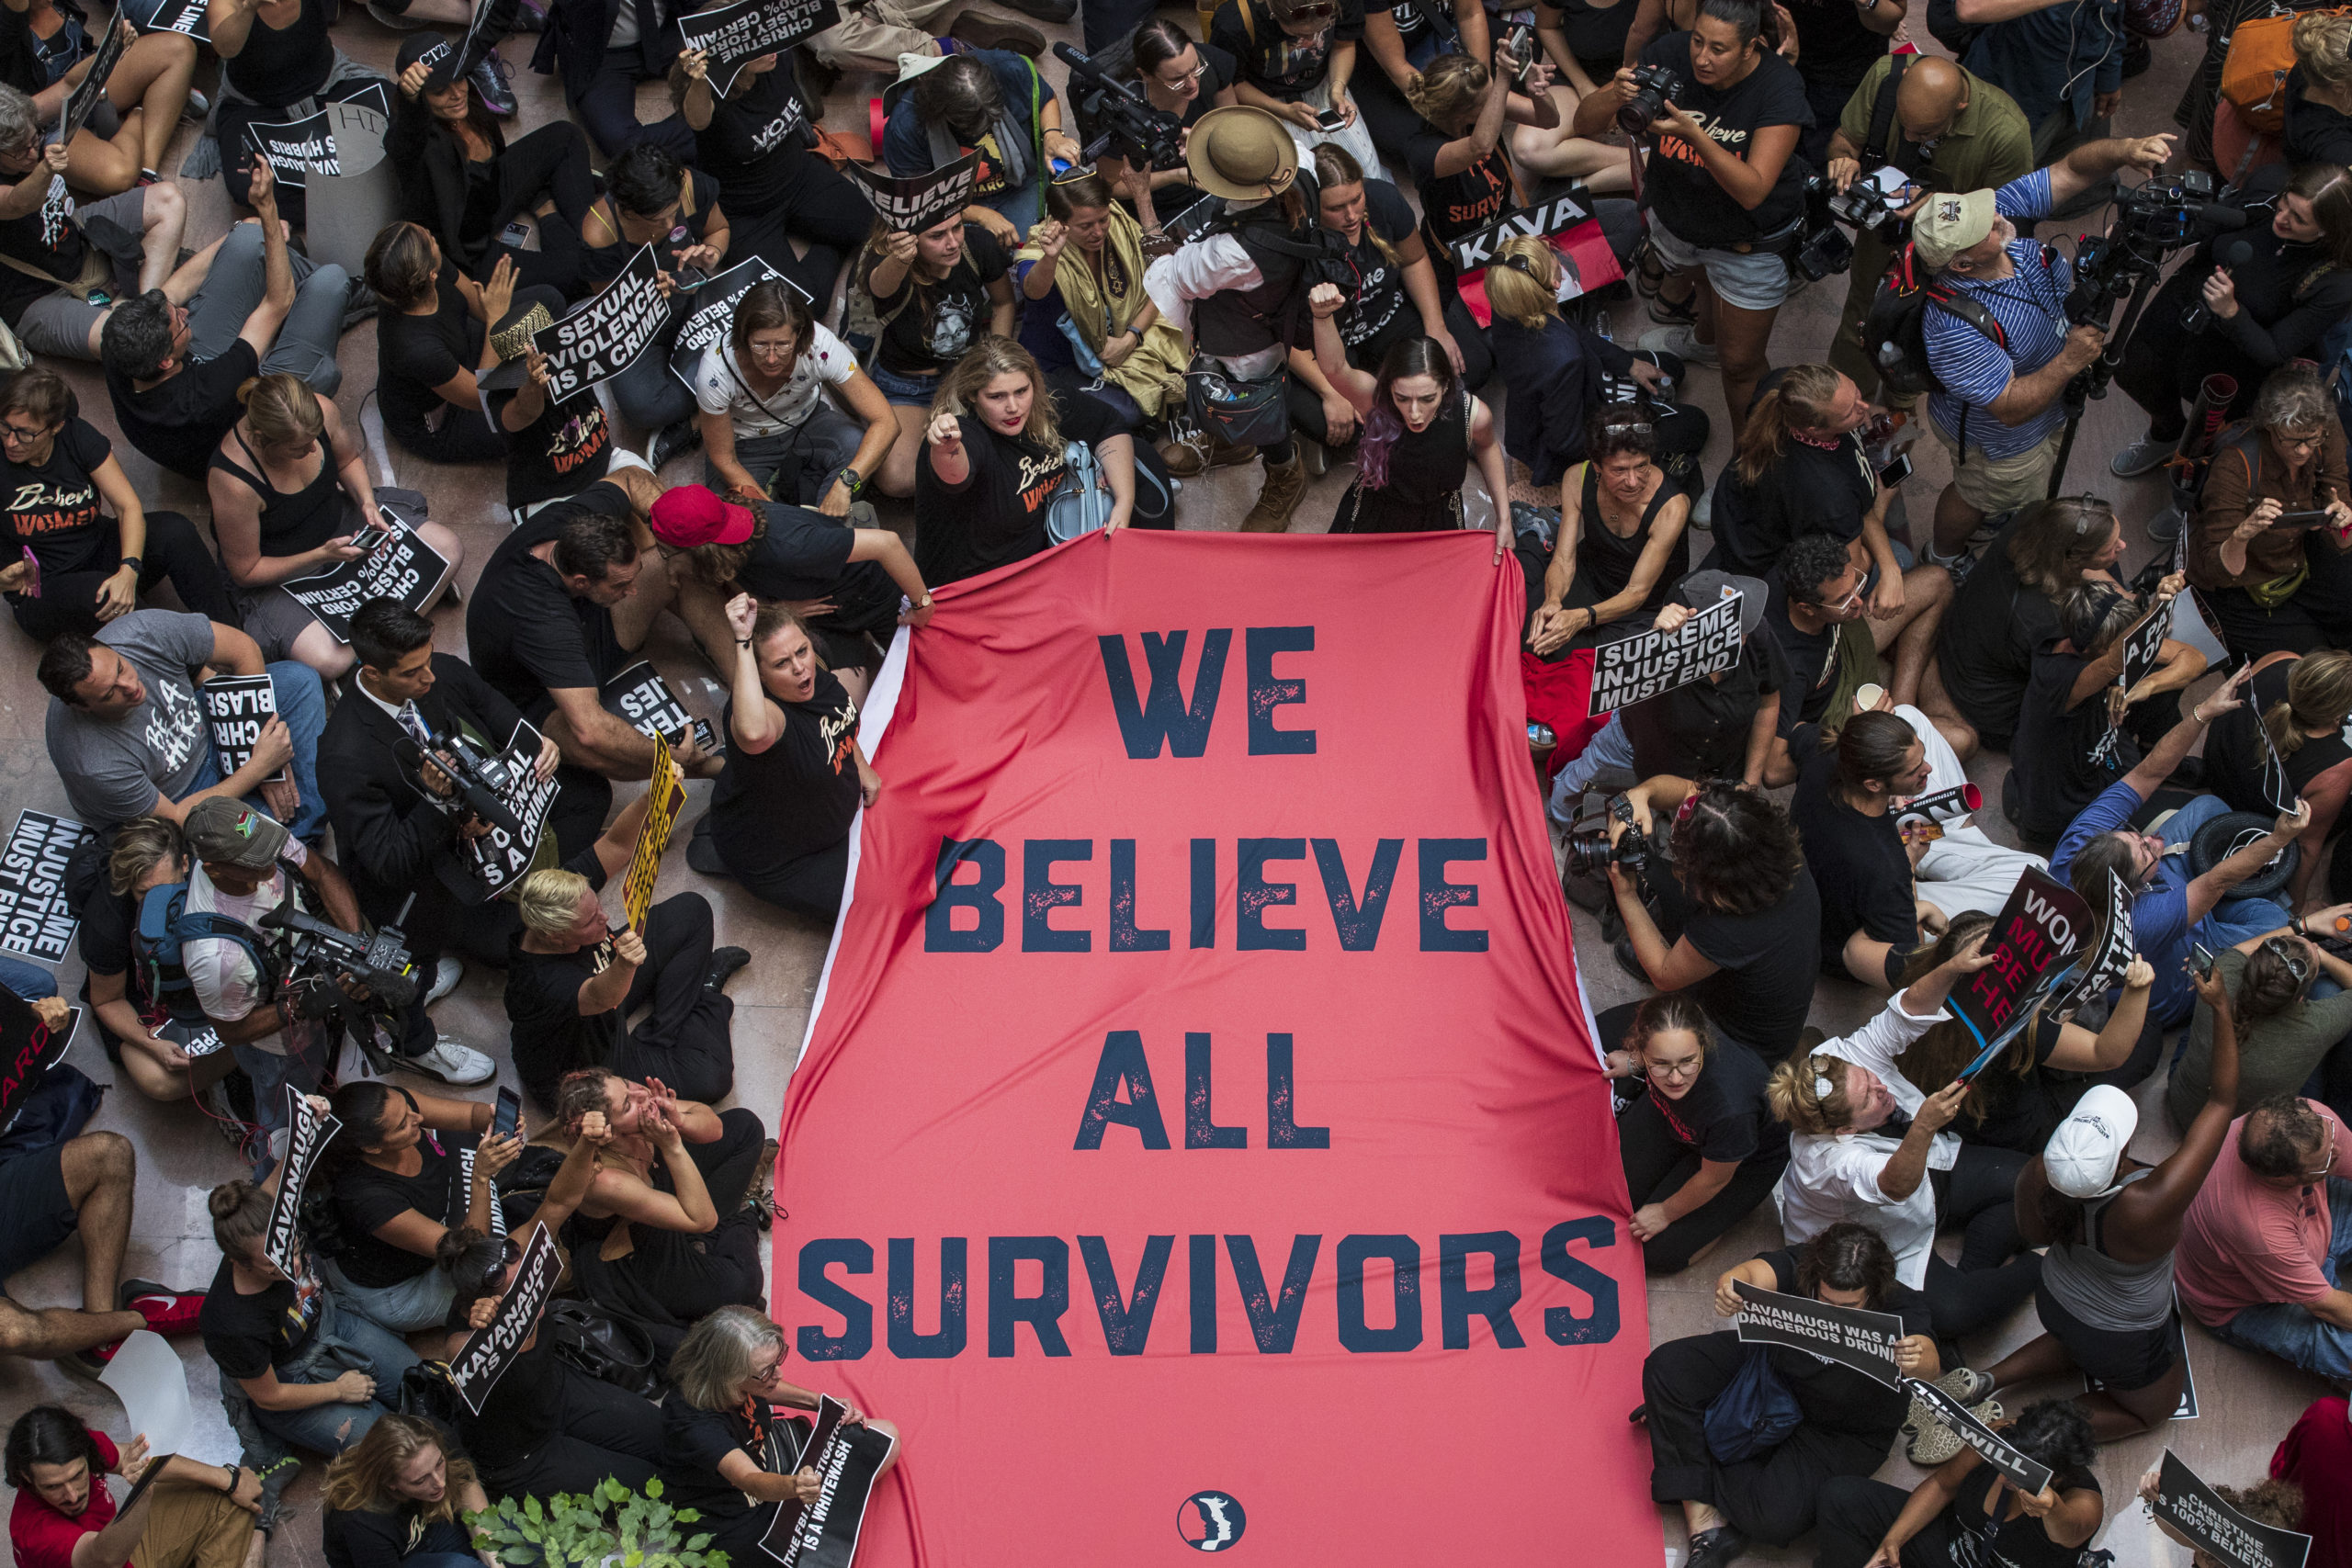 WASHINGTON, DC - OCTOBER 4: Protestors rally against Supreme Court nominee Judge Brett Kavanaugh in the atrium of the Hart Senate Office Building on Capitol Hill, October 4, 2018 in Washington, DC. (Photo by Drew Angerer/Getty Images)